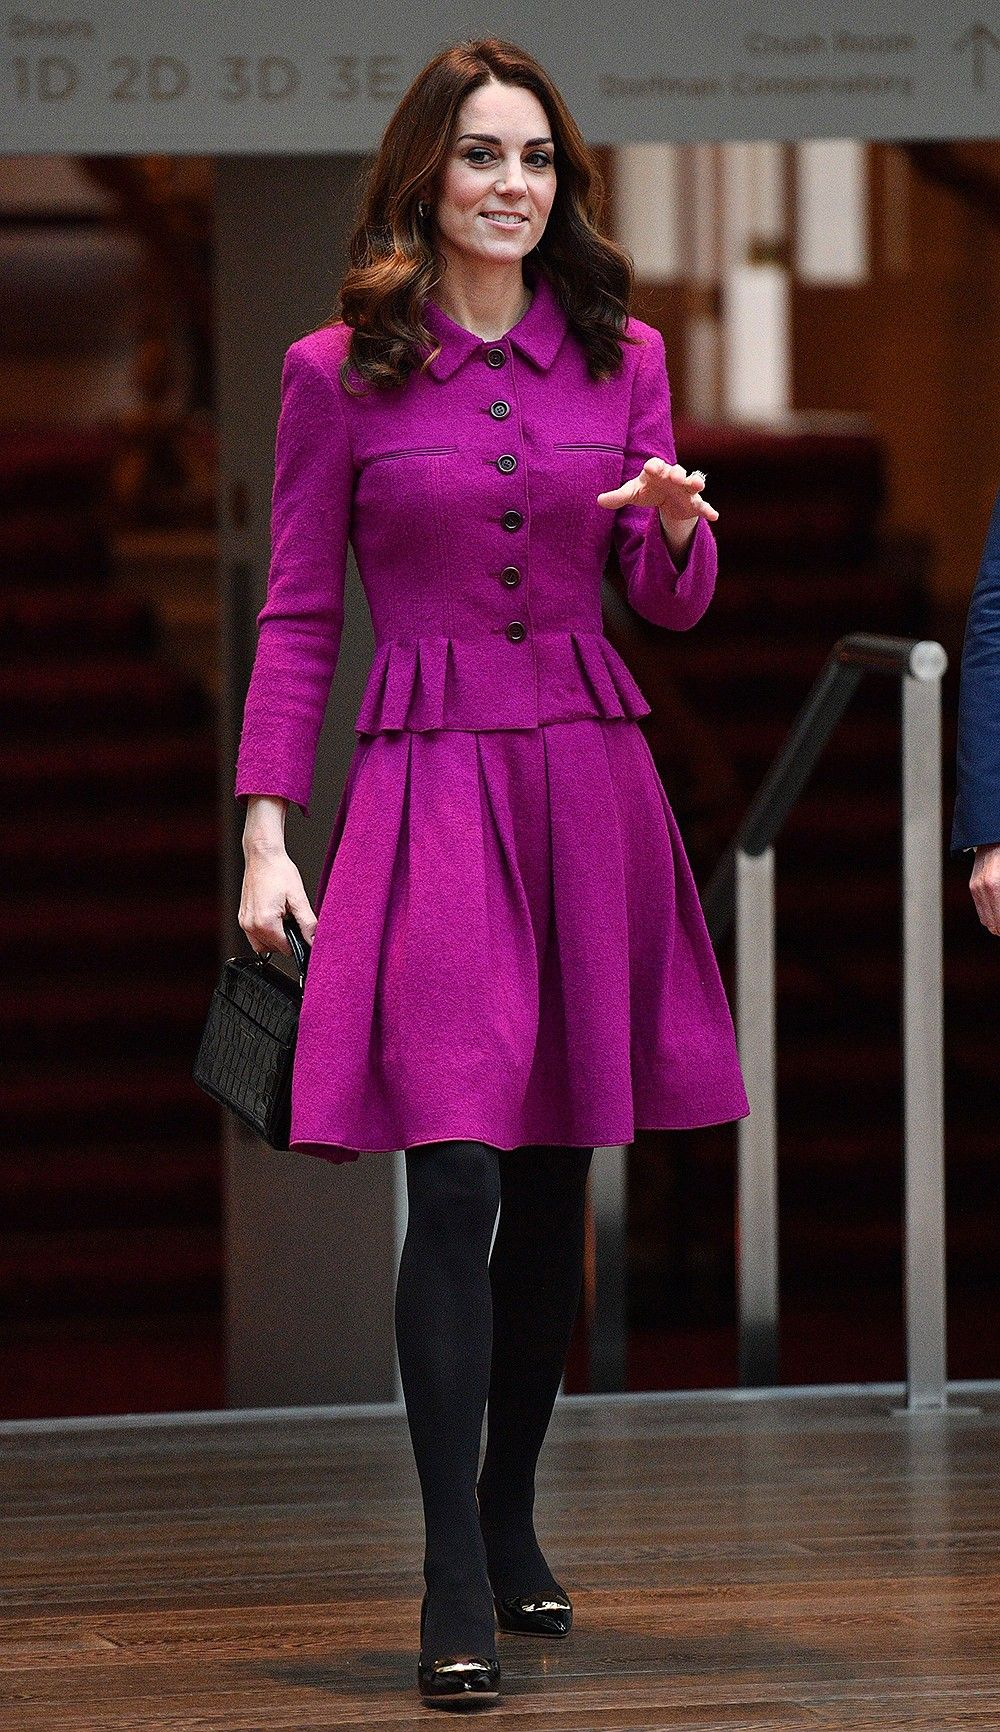 Kate Middleton wears ANOTHER green dress on final day of